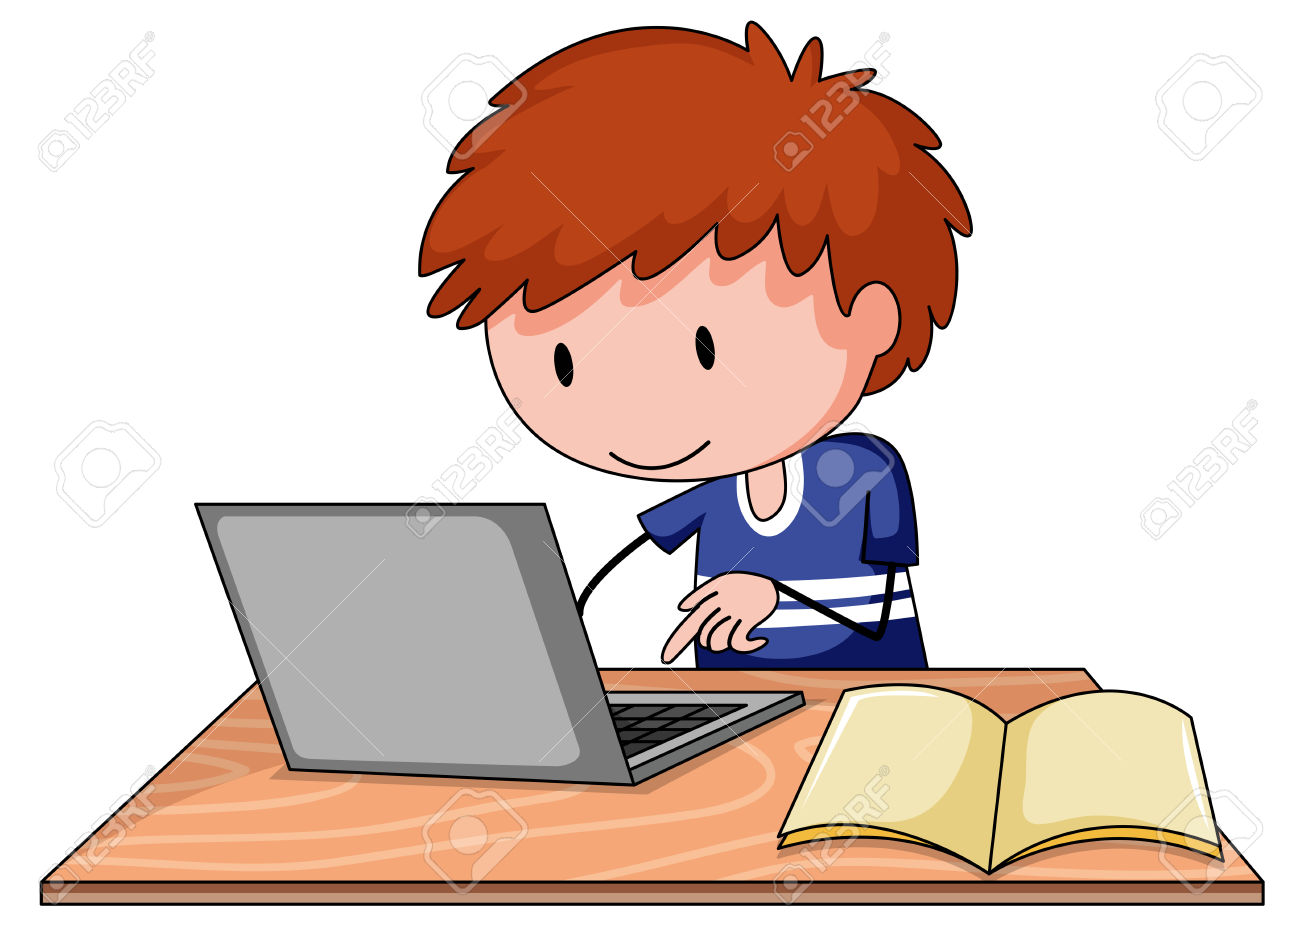 Boy in front of a computer clipart clip freeuse Kid On Computer Clipart | Free download best Kid On Computer Clipart ... clip freeuse